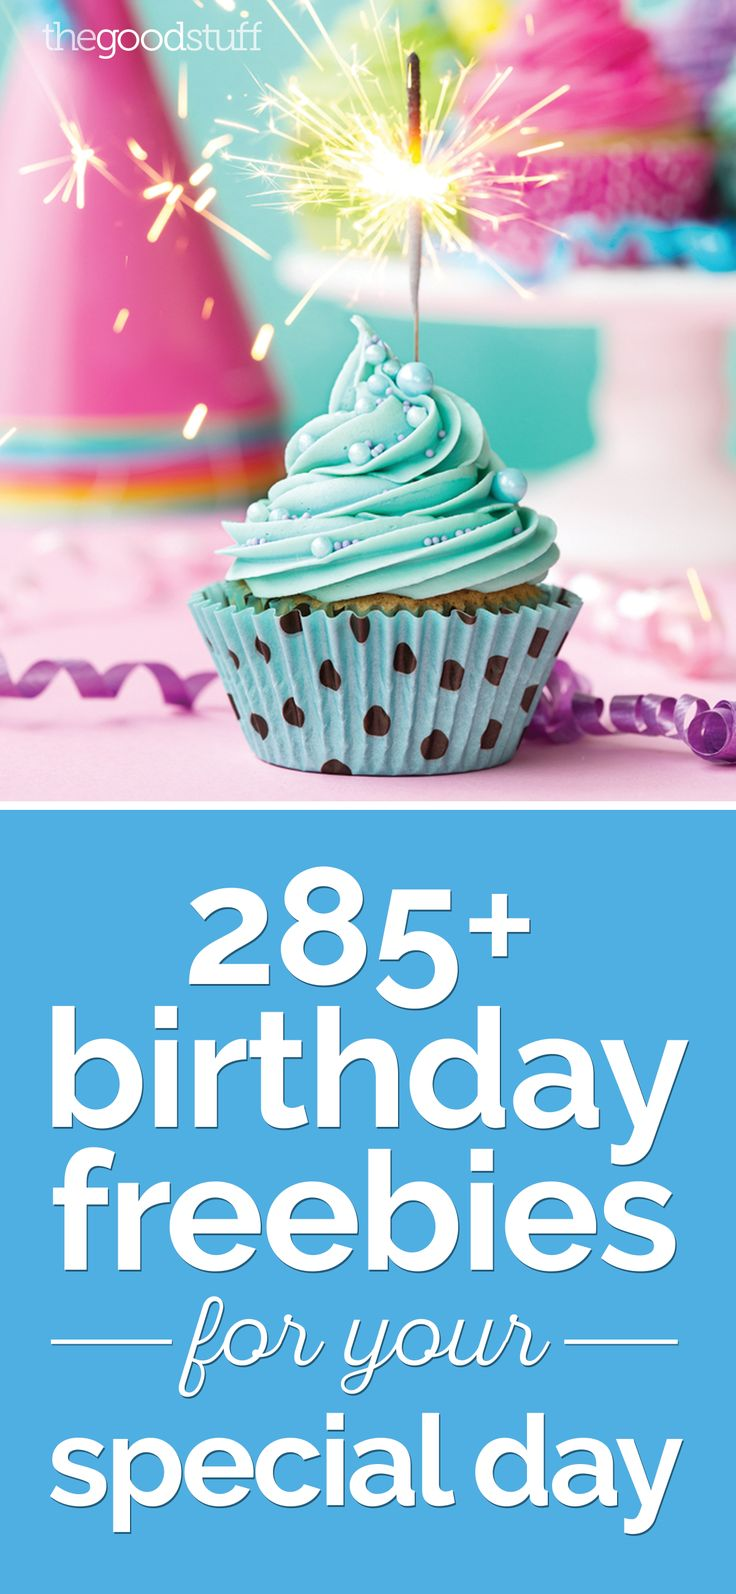 285+ Birthday Freebies for Your Special Day - thegoodstuff